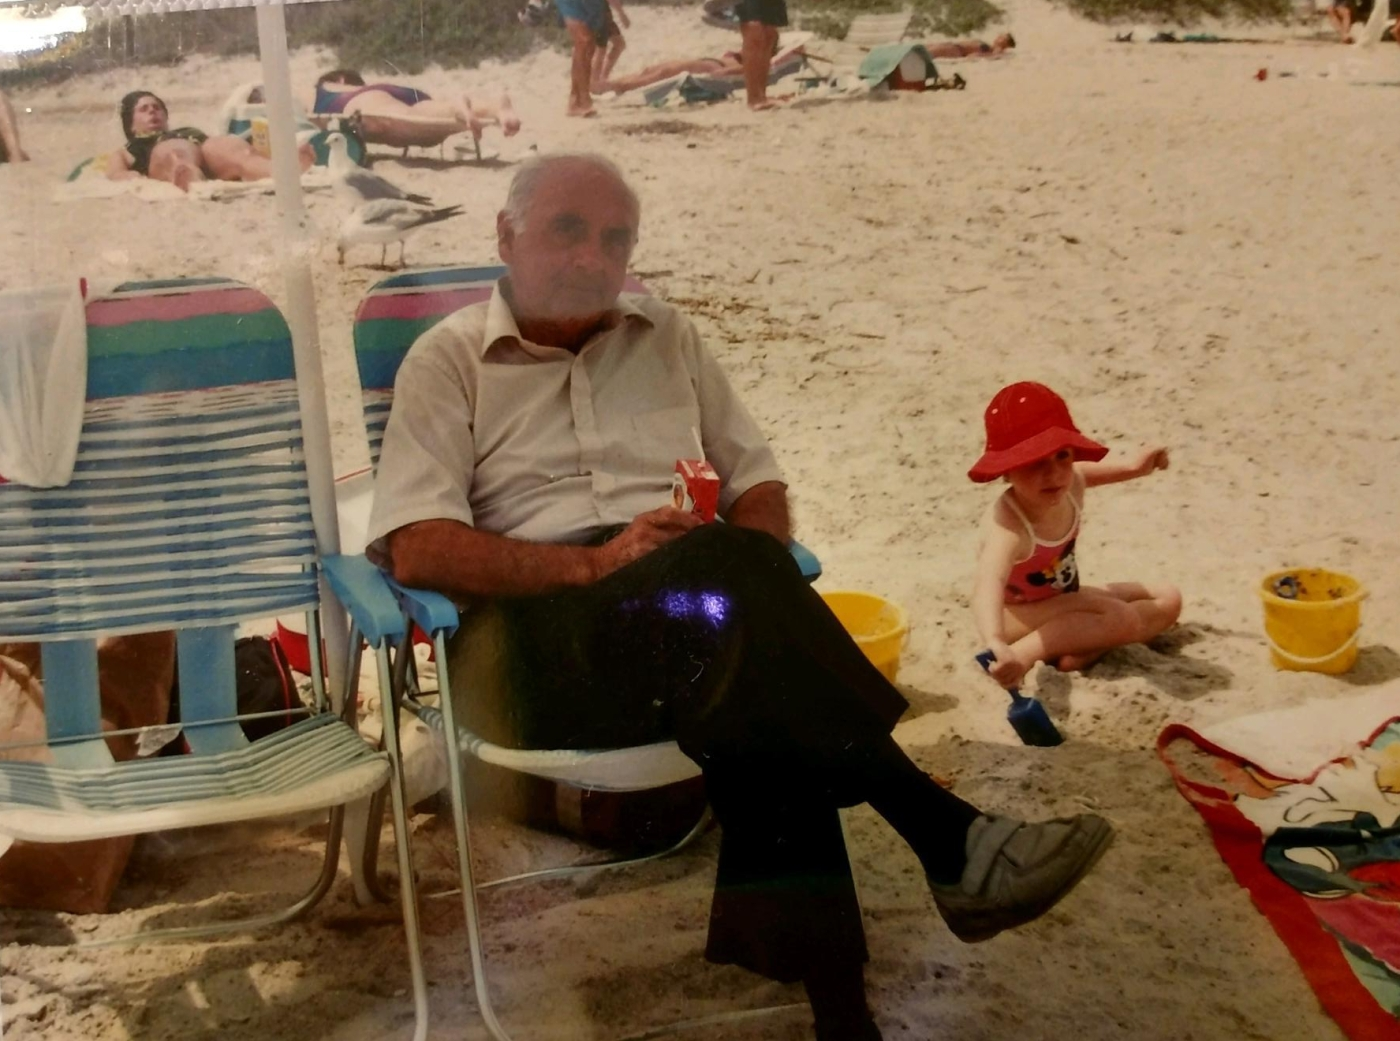 Grandfather sits in a beach chair with little girl playing beside him in the sand